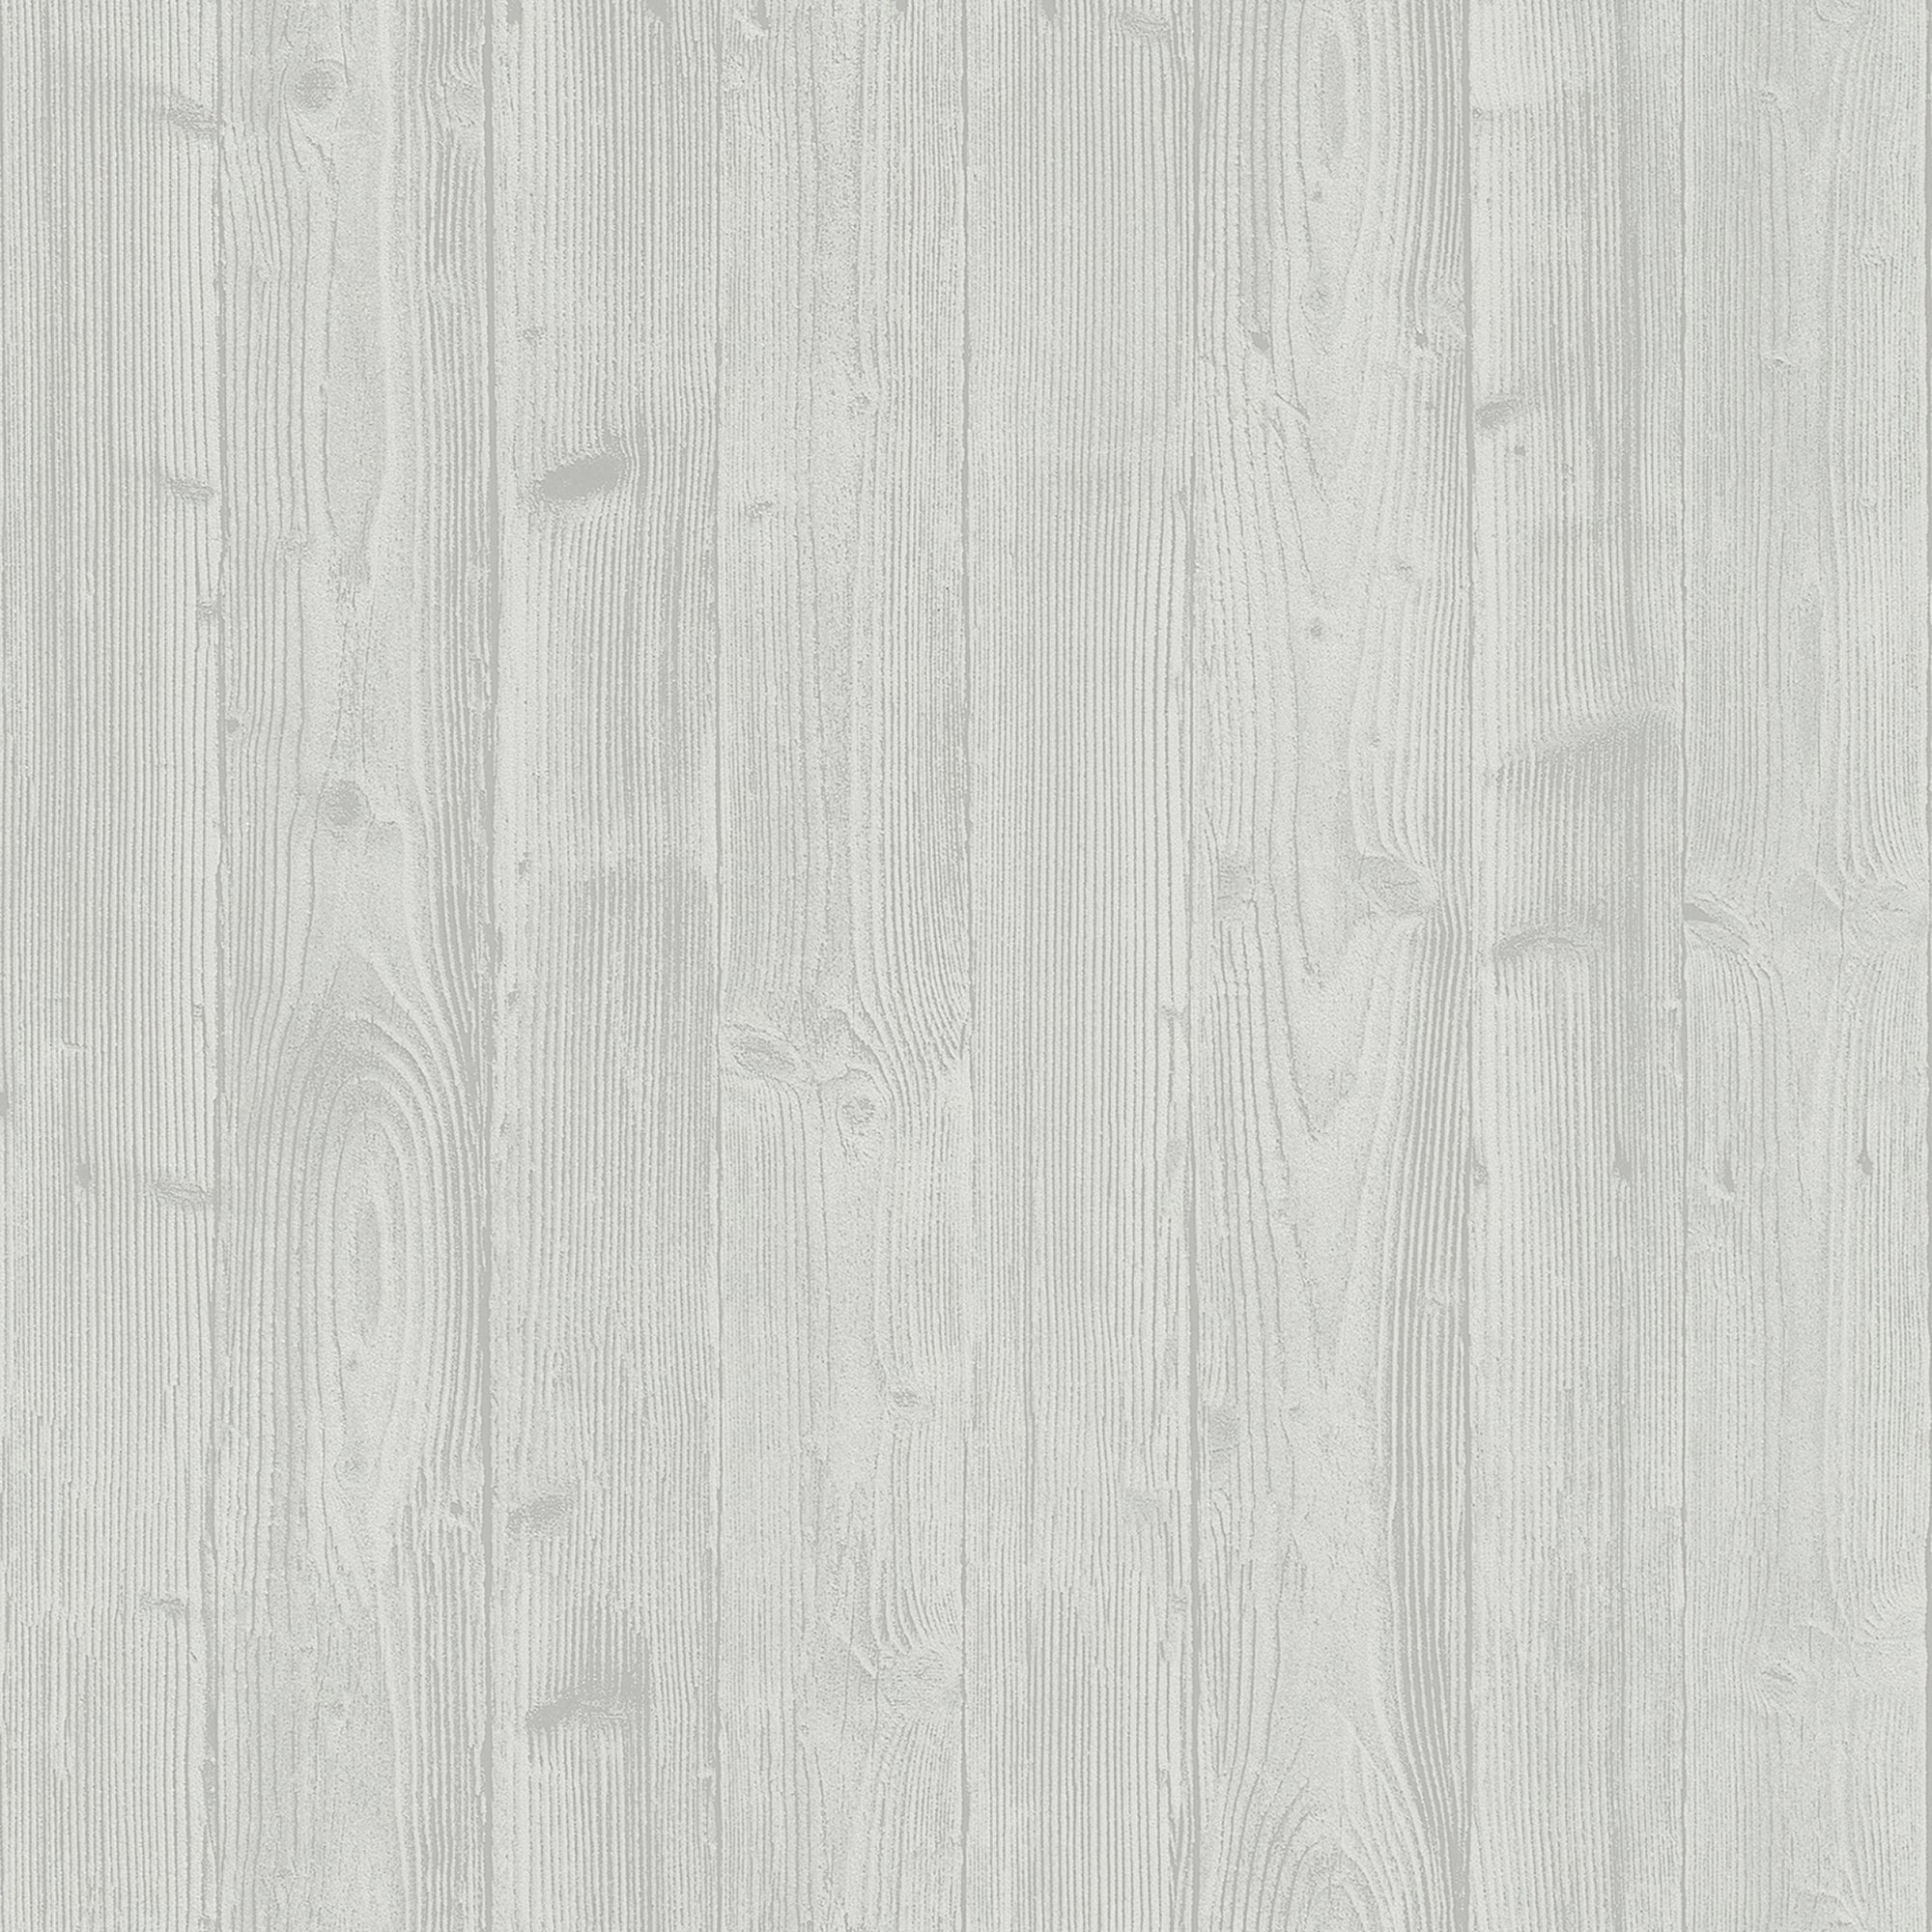 Talbot Light Grey Wood Wallpaper